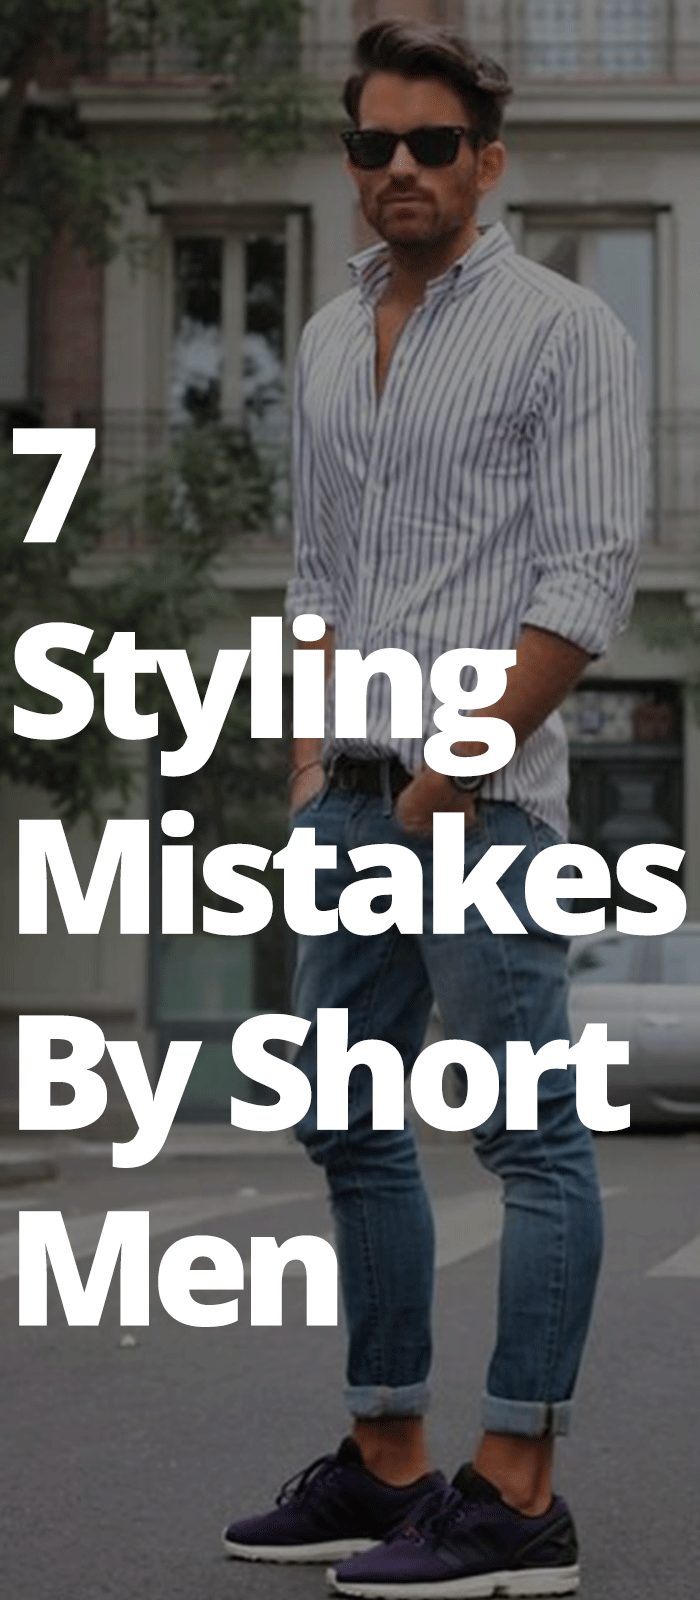 7 Styling Mistakes By Short Men